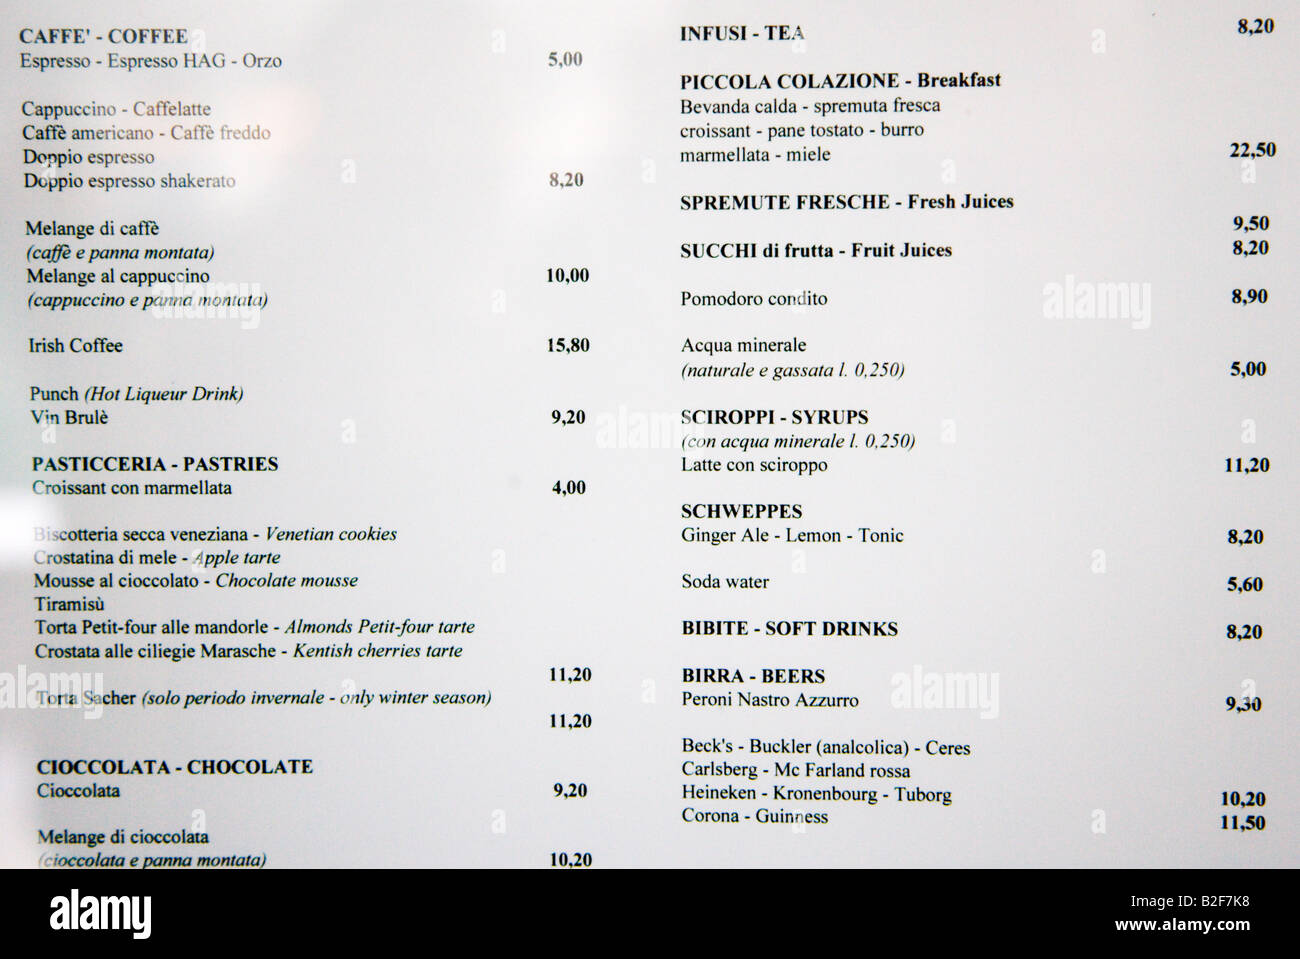 Cafe Florian Menu showing prices Venice Italy - Stock Image